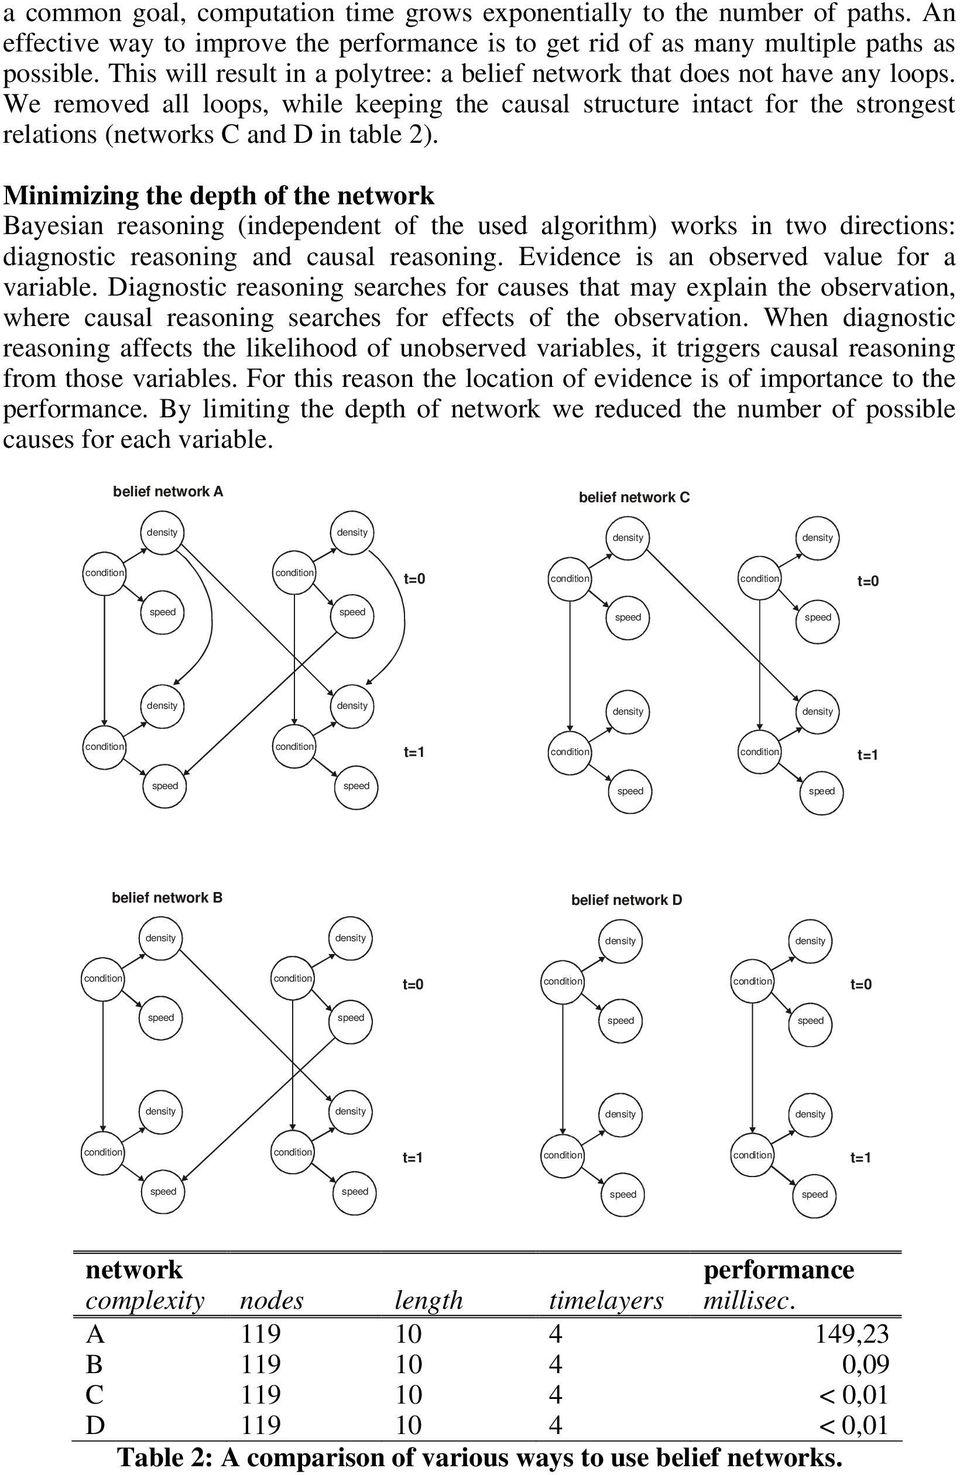 We removed all loops, while keeping the causal structure intact for the strongest relations (networks C and D in table 2).